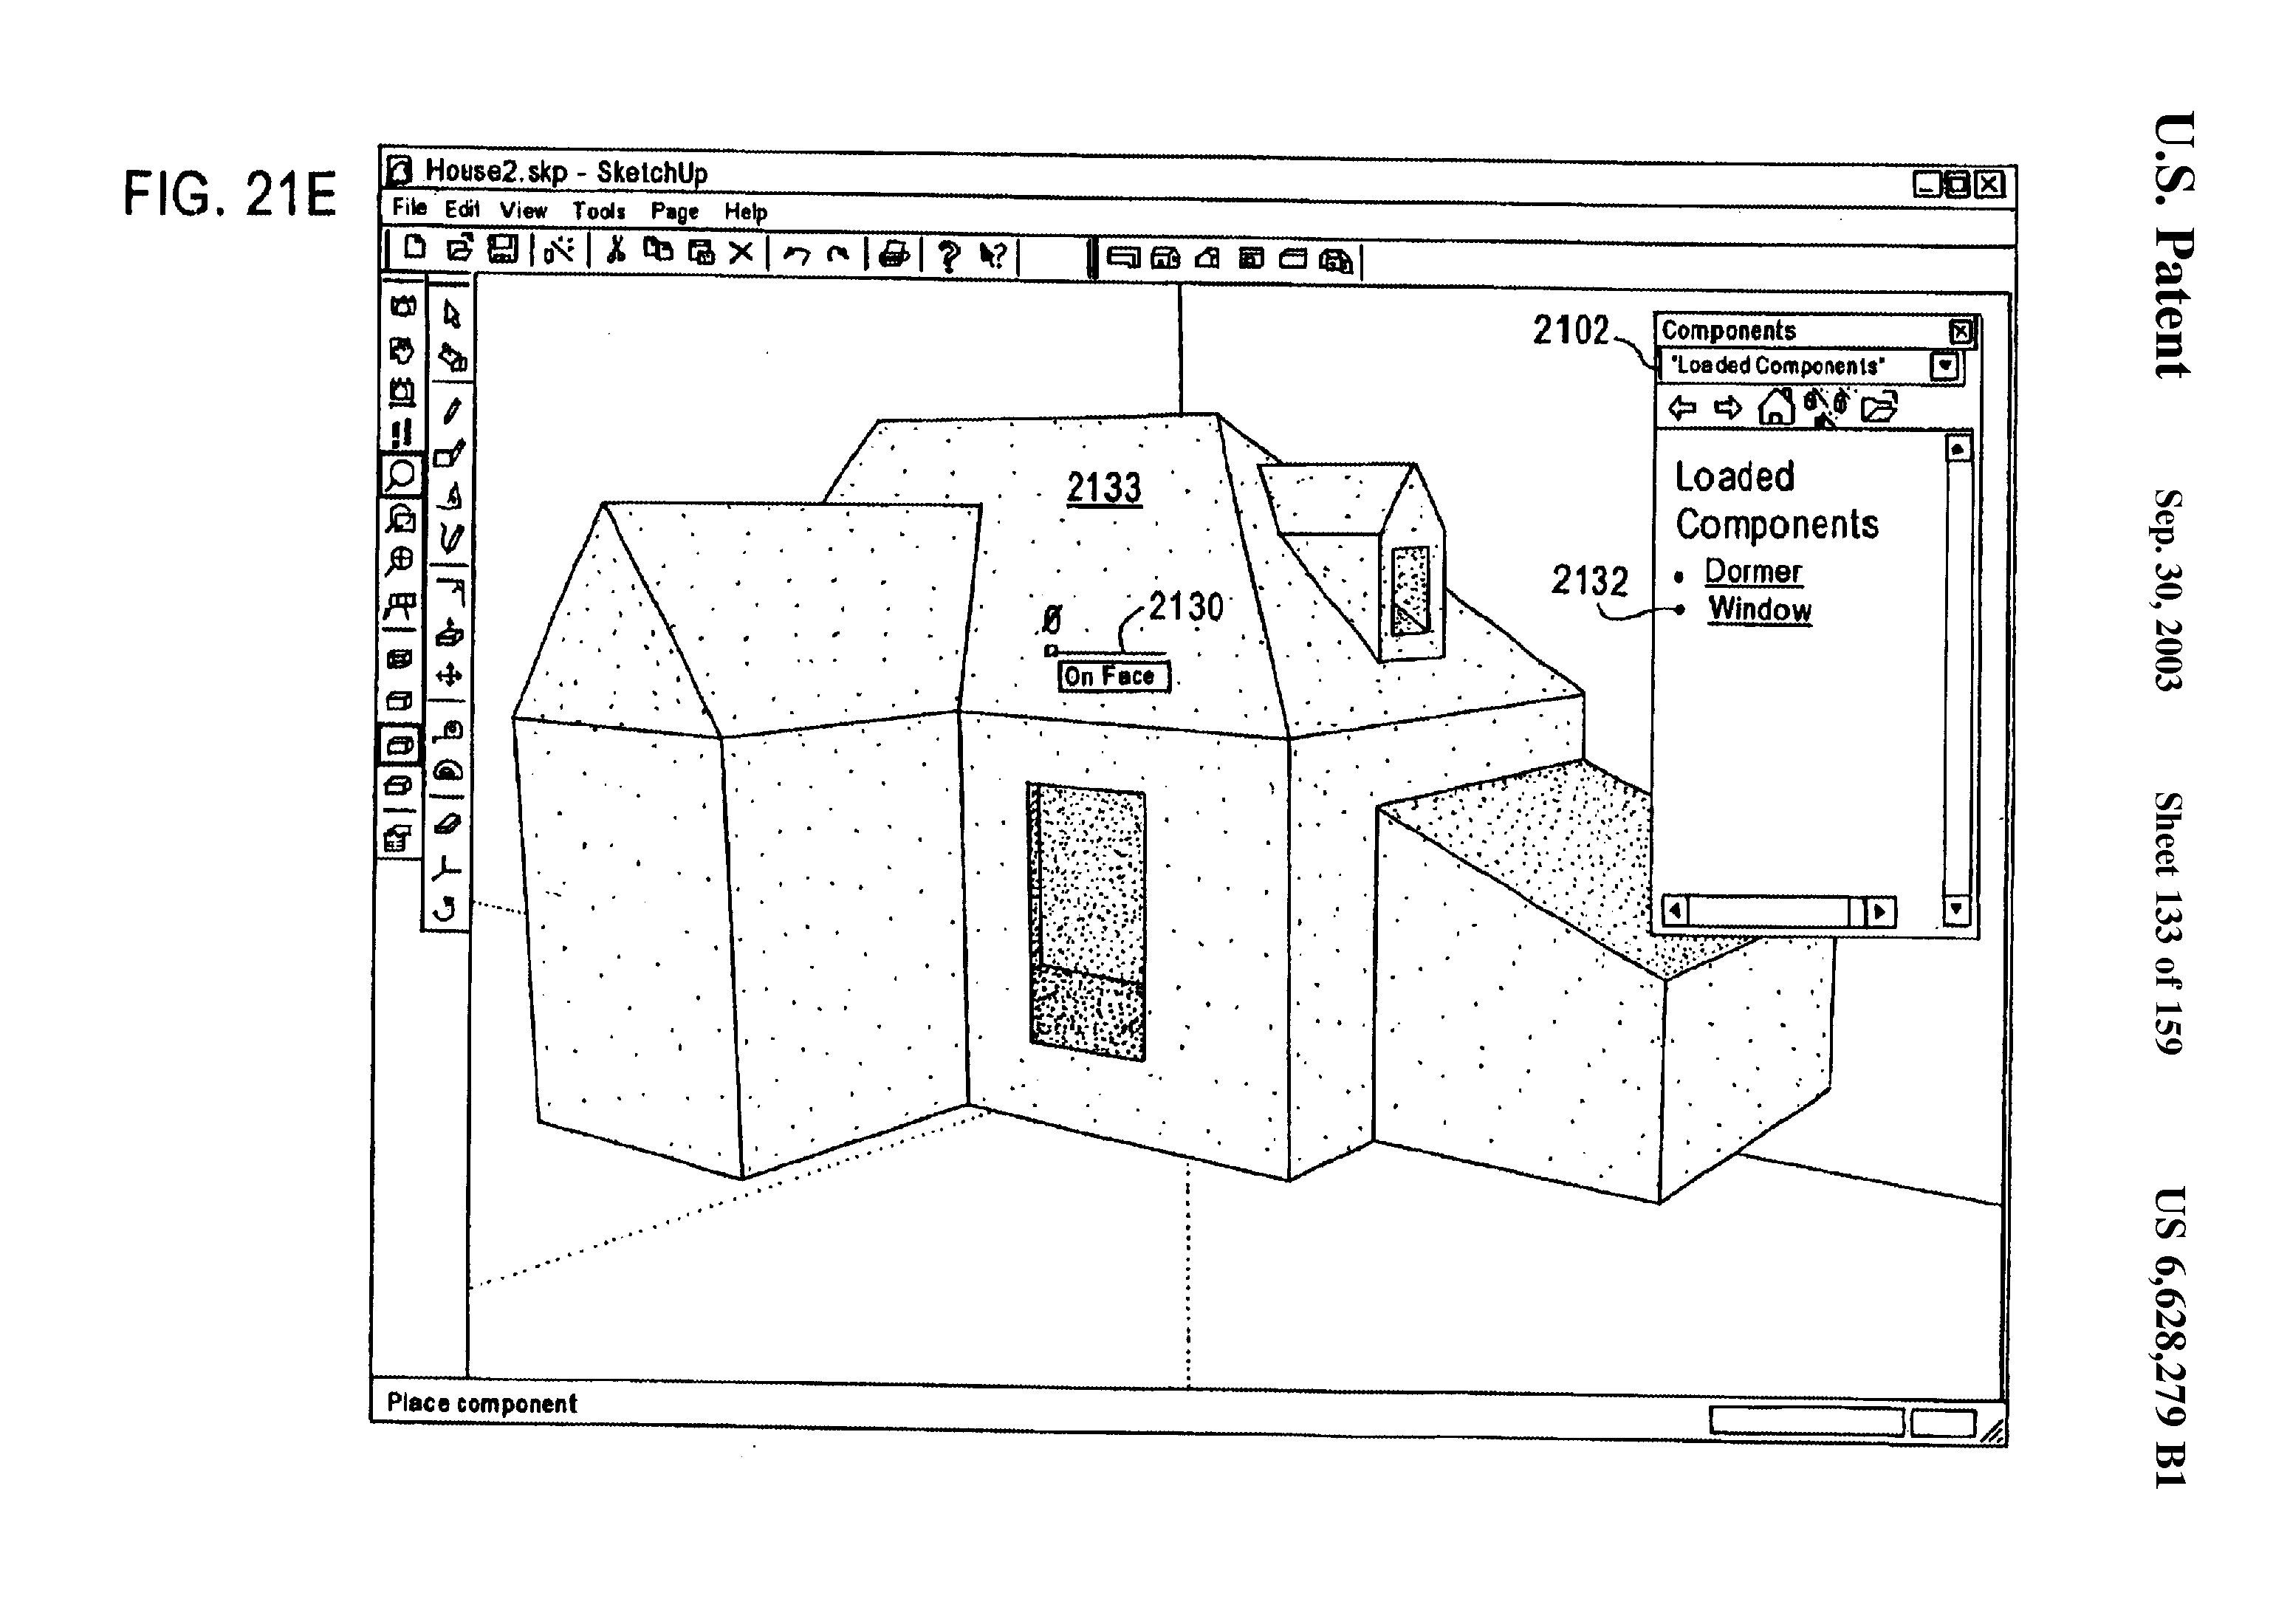 U.S. Patent for SketchUp